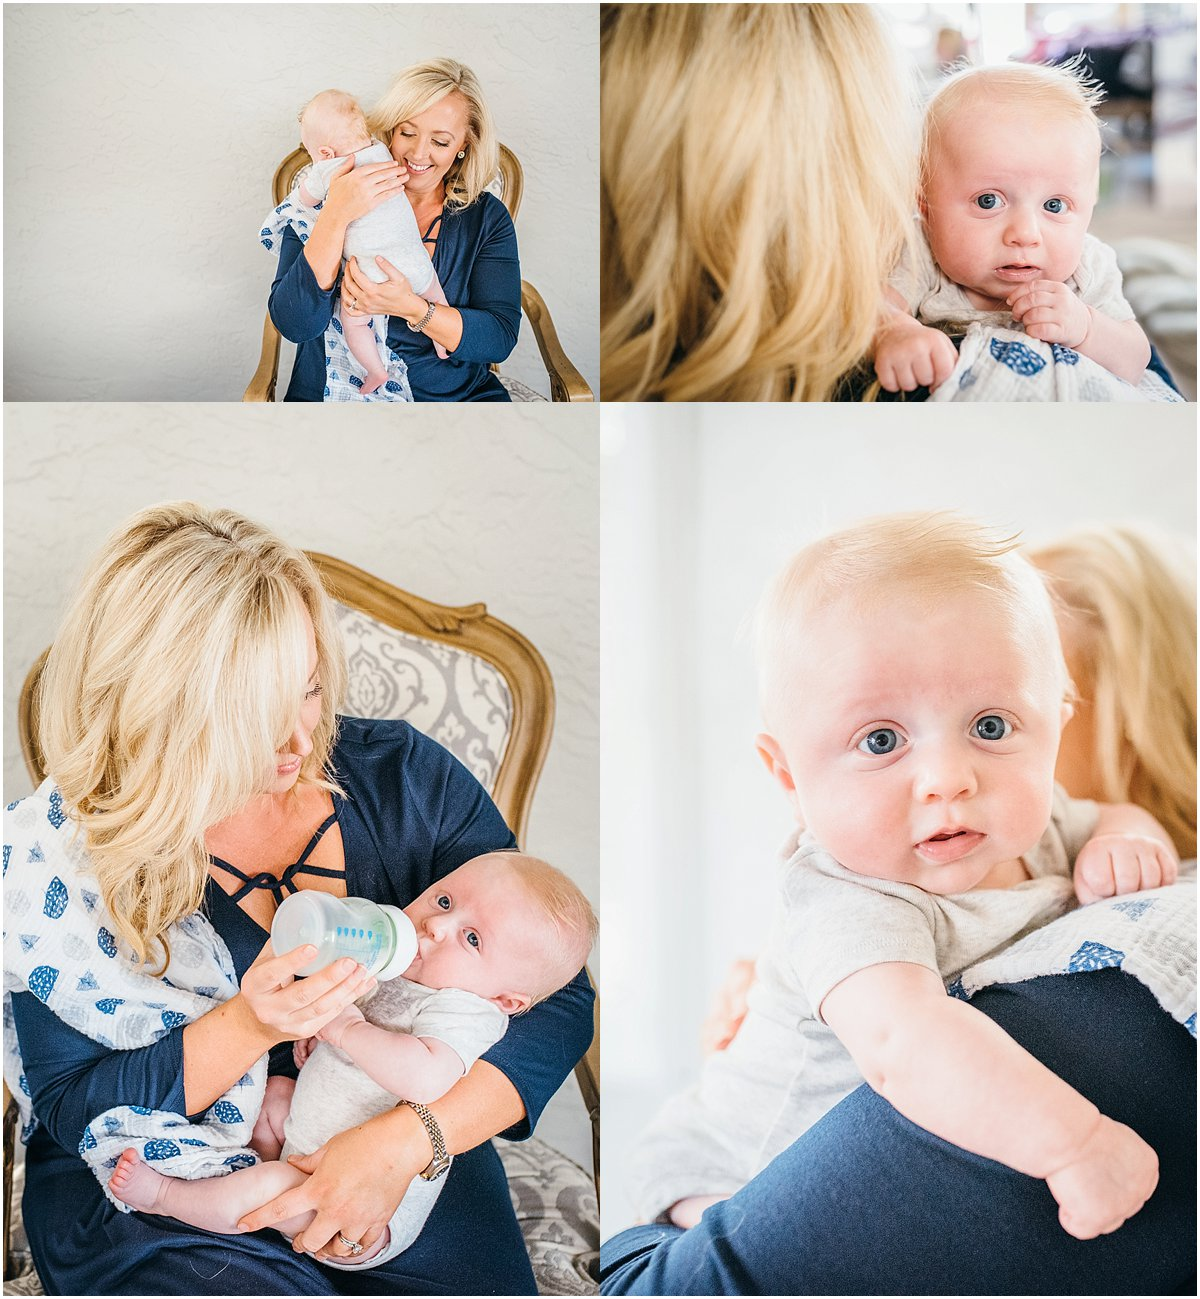 Ashley_Rogers_Photography_Orlando_Non-Posed_Newborn_Family_Lifestyle_Photographer_0862.jpg